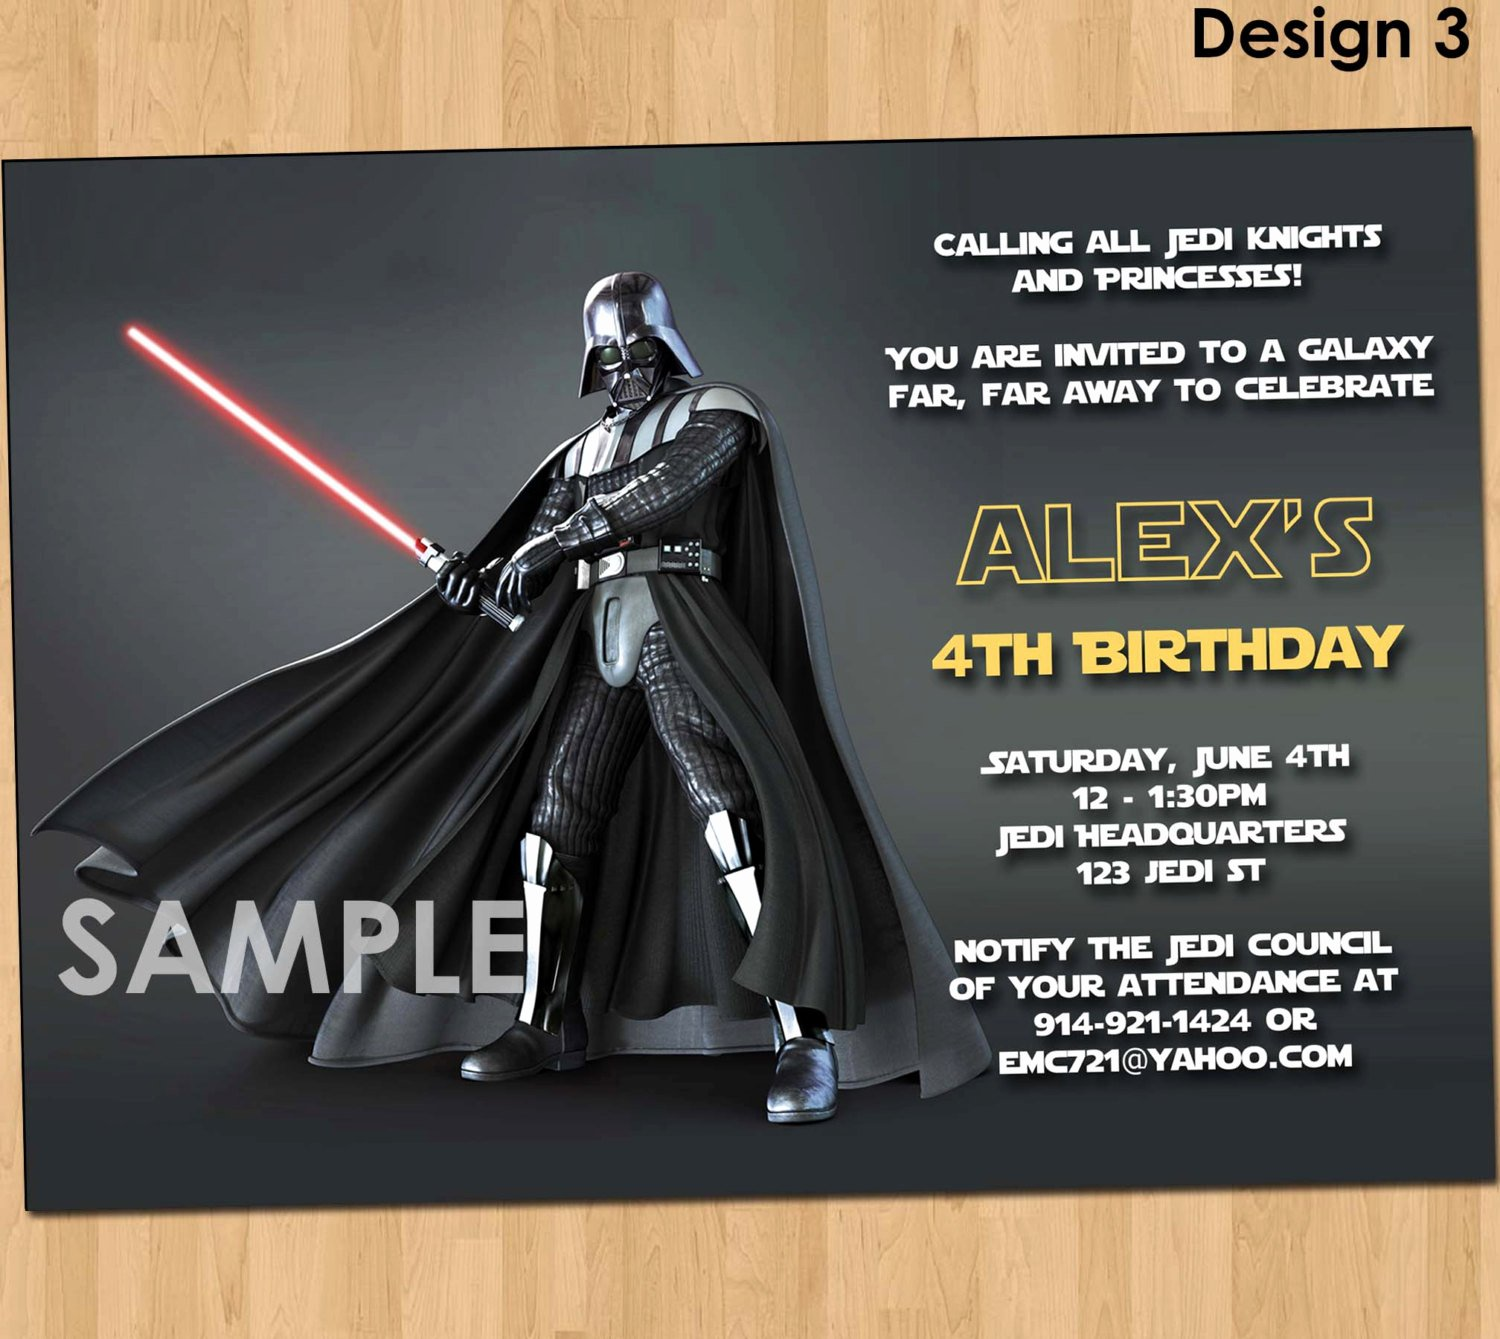 Stars Wars Birthday Invitations Awesome Star Wars Invitation Star Wars Party Invitation Star Wars